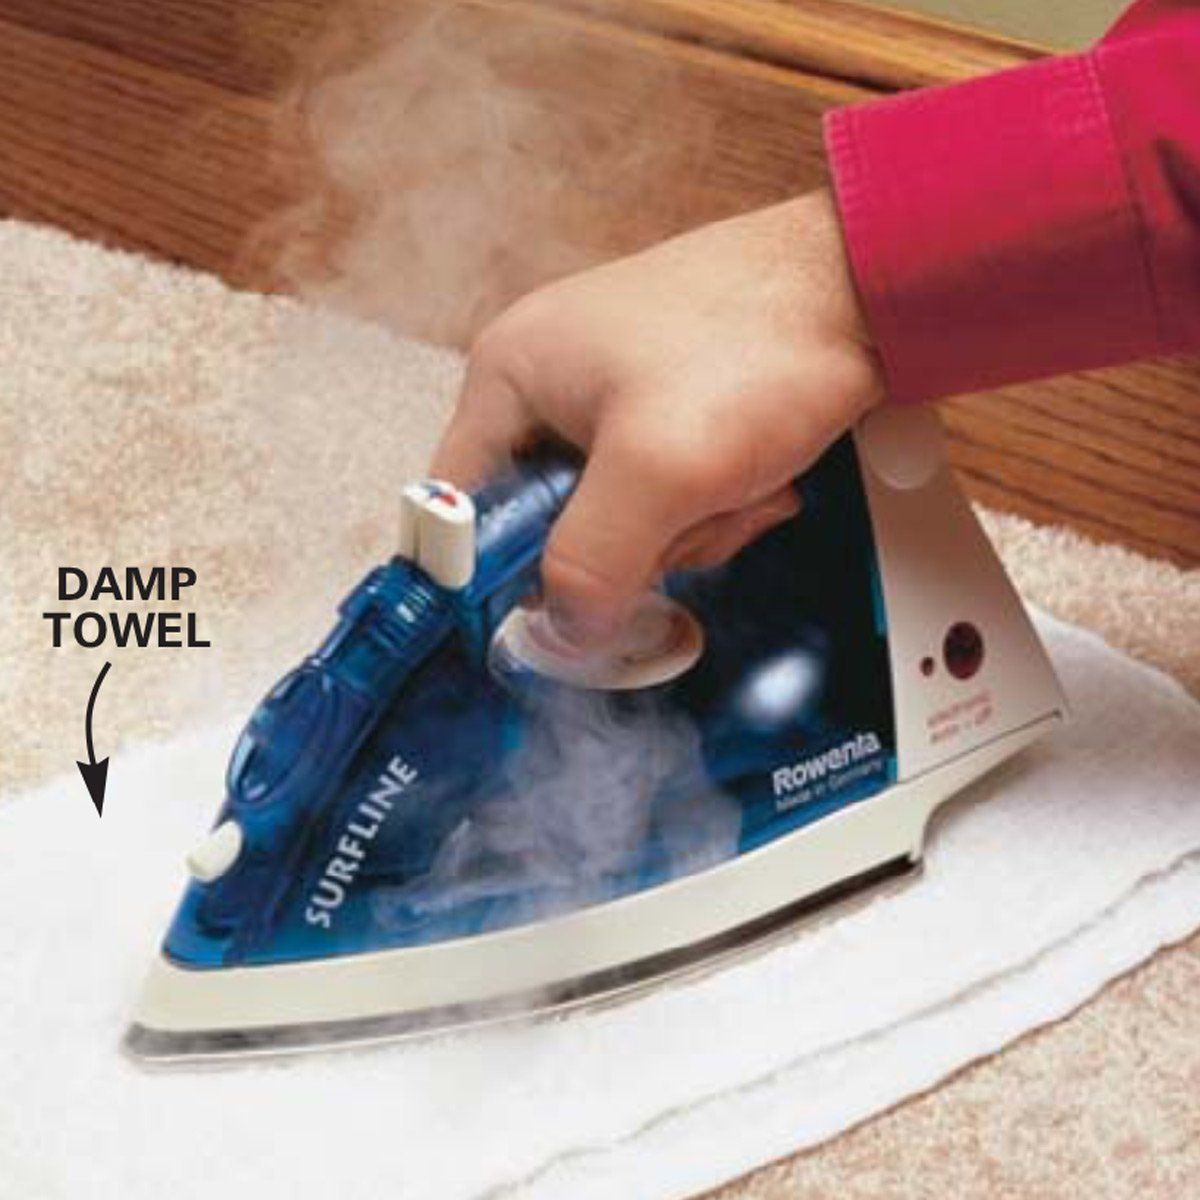 How to remove wax from a carpet in 3 steps family